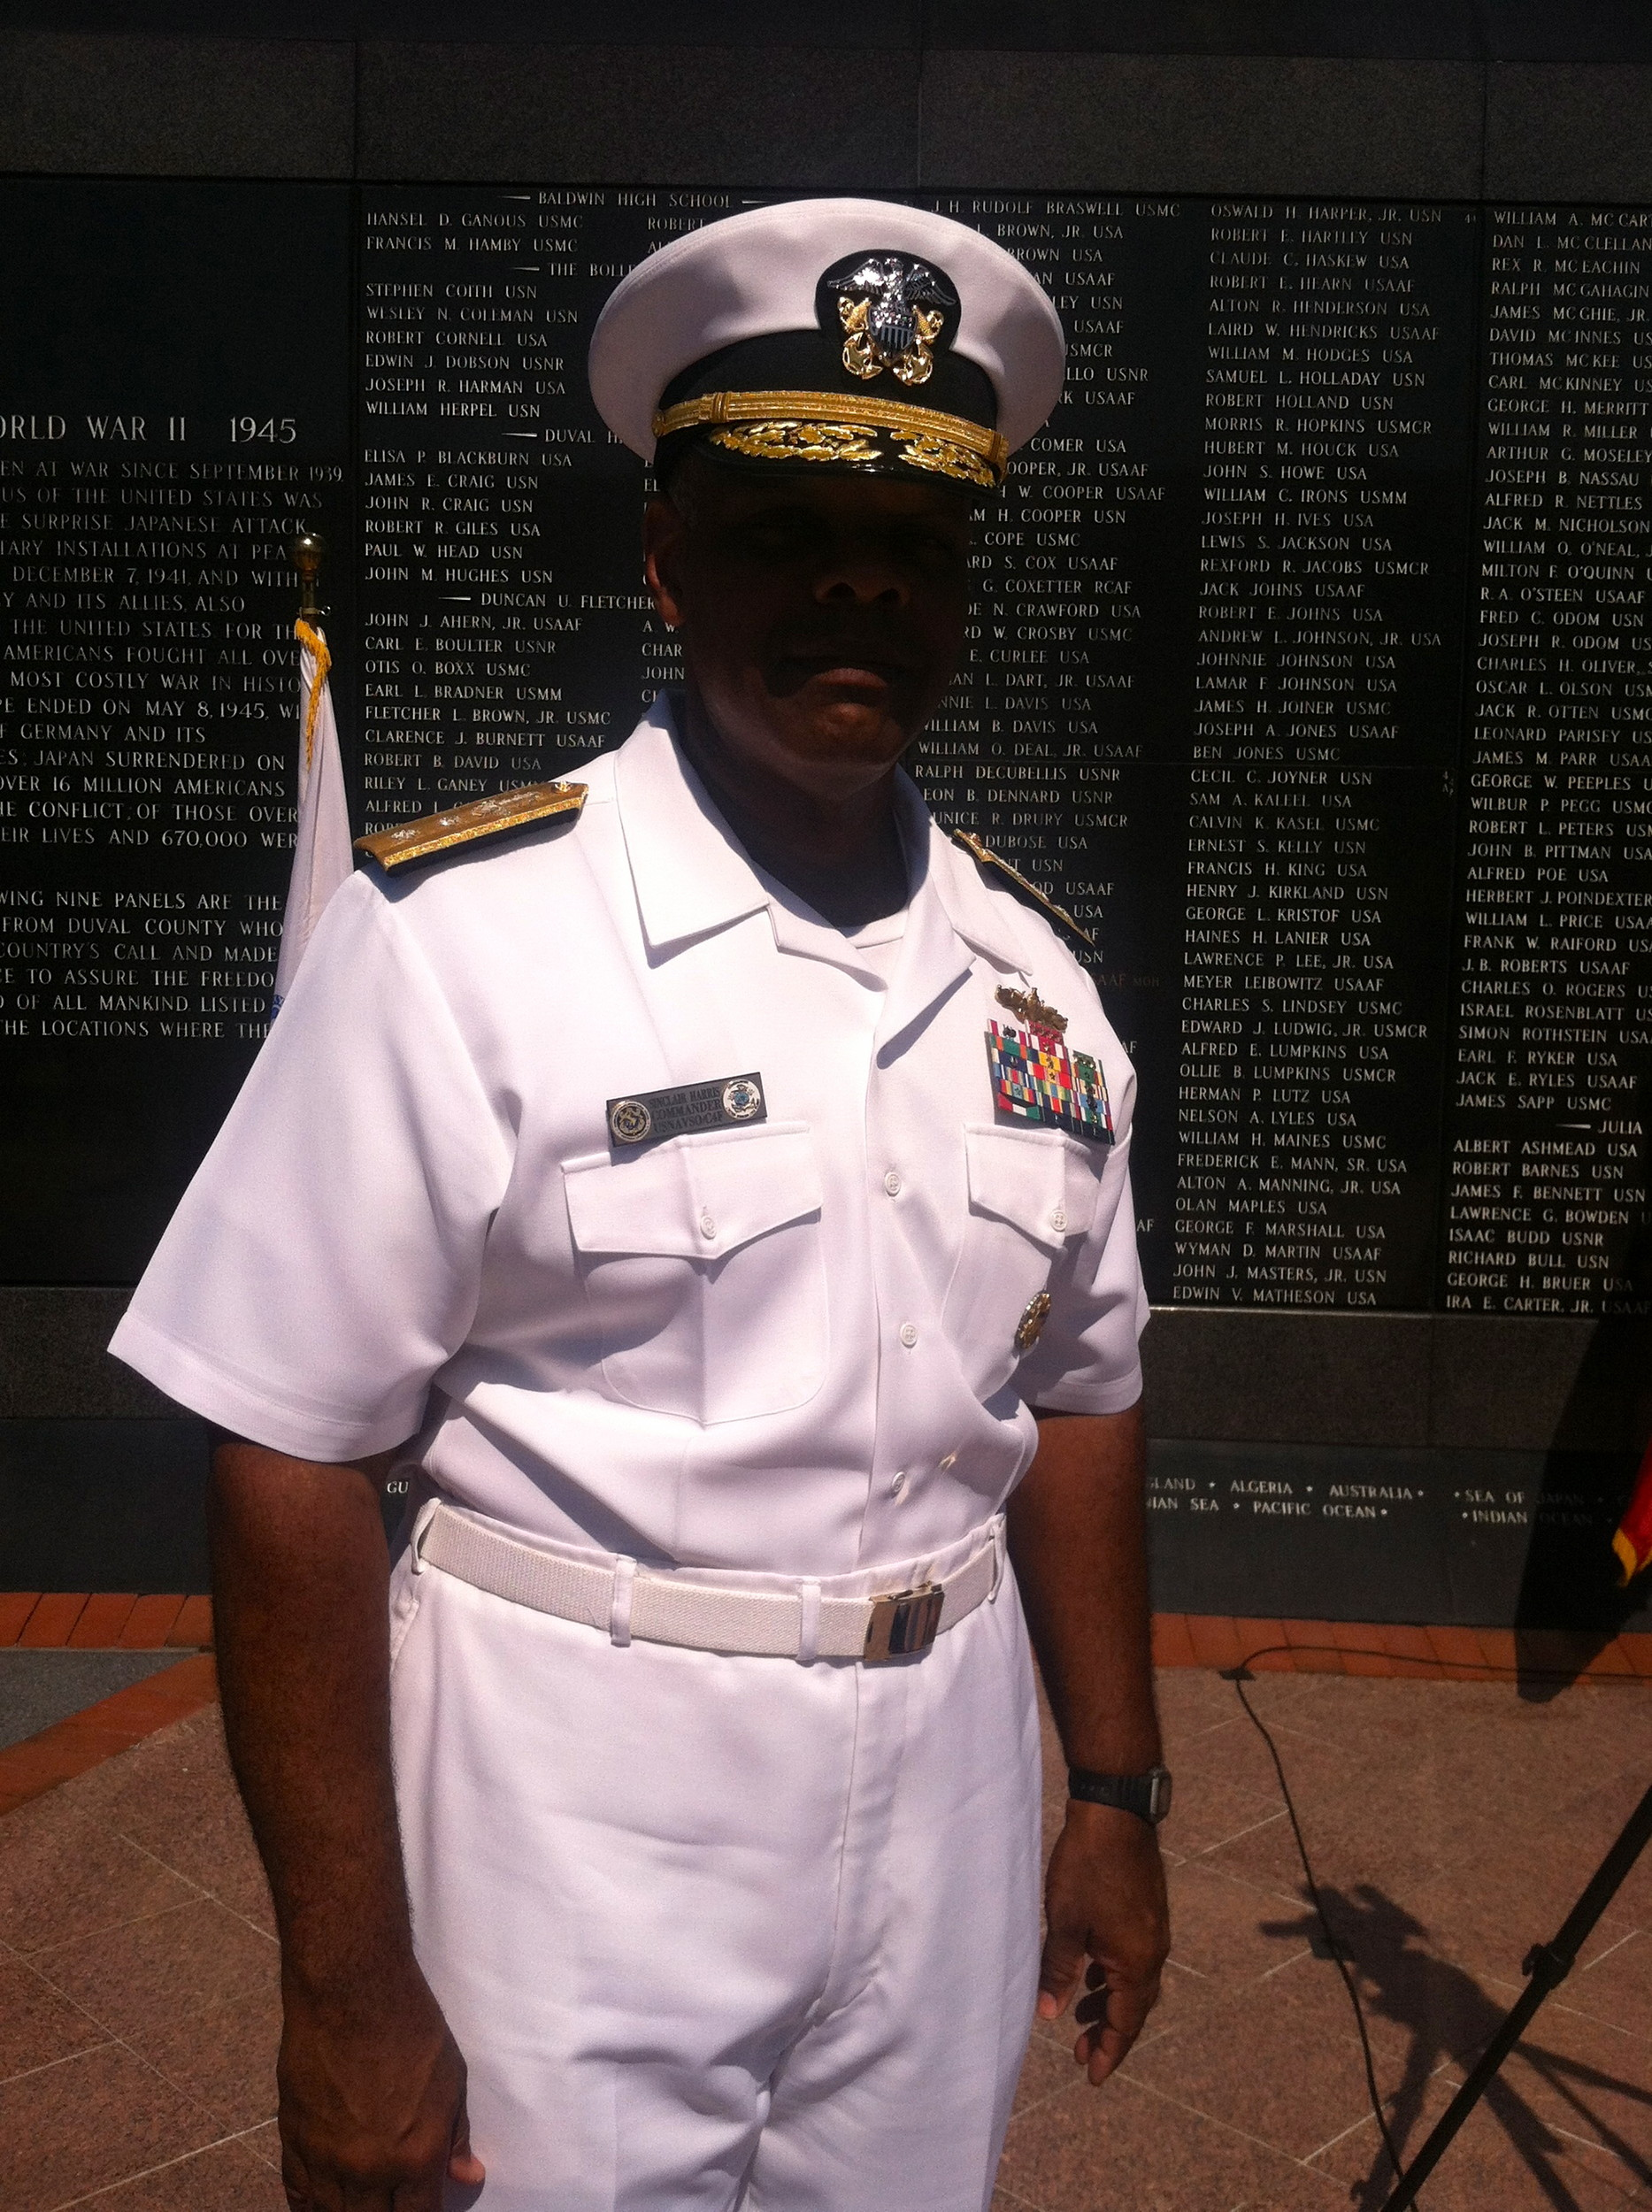 RADM Sinclair Harris, Commander, U.S. Naval